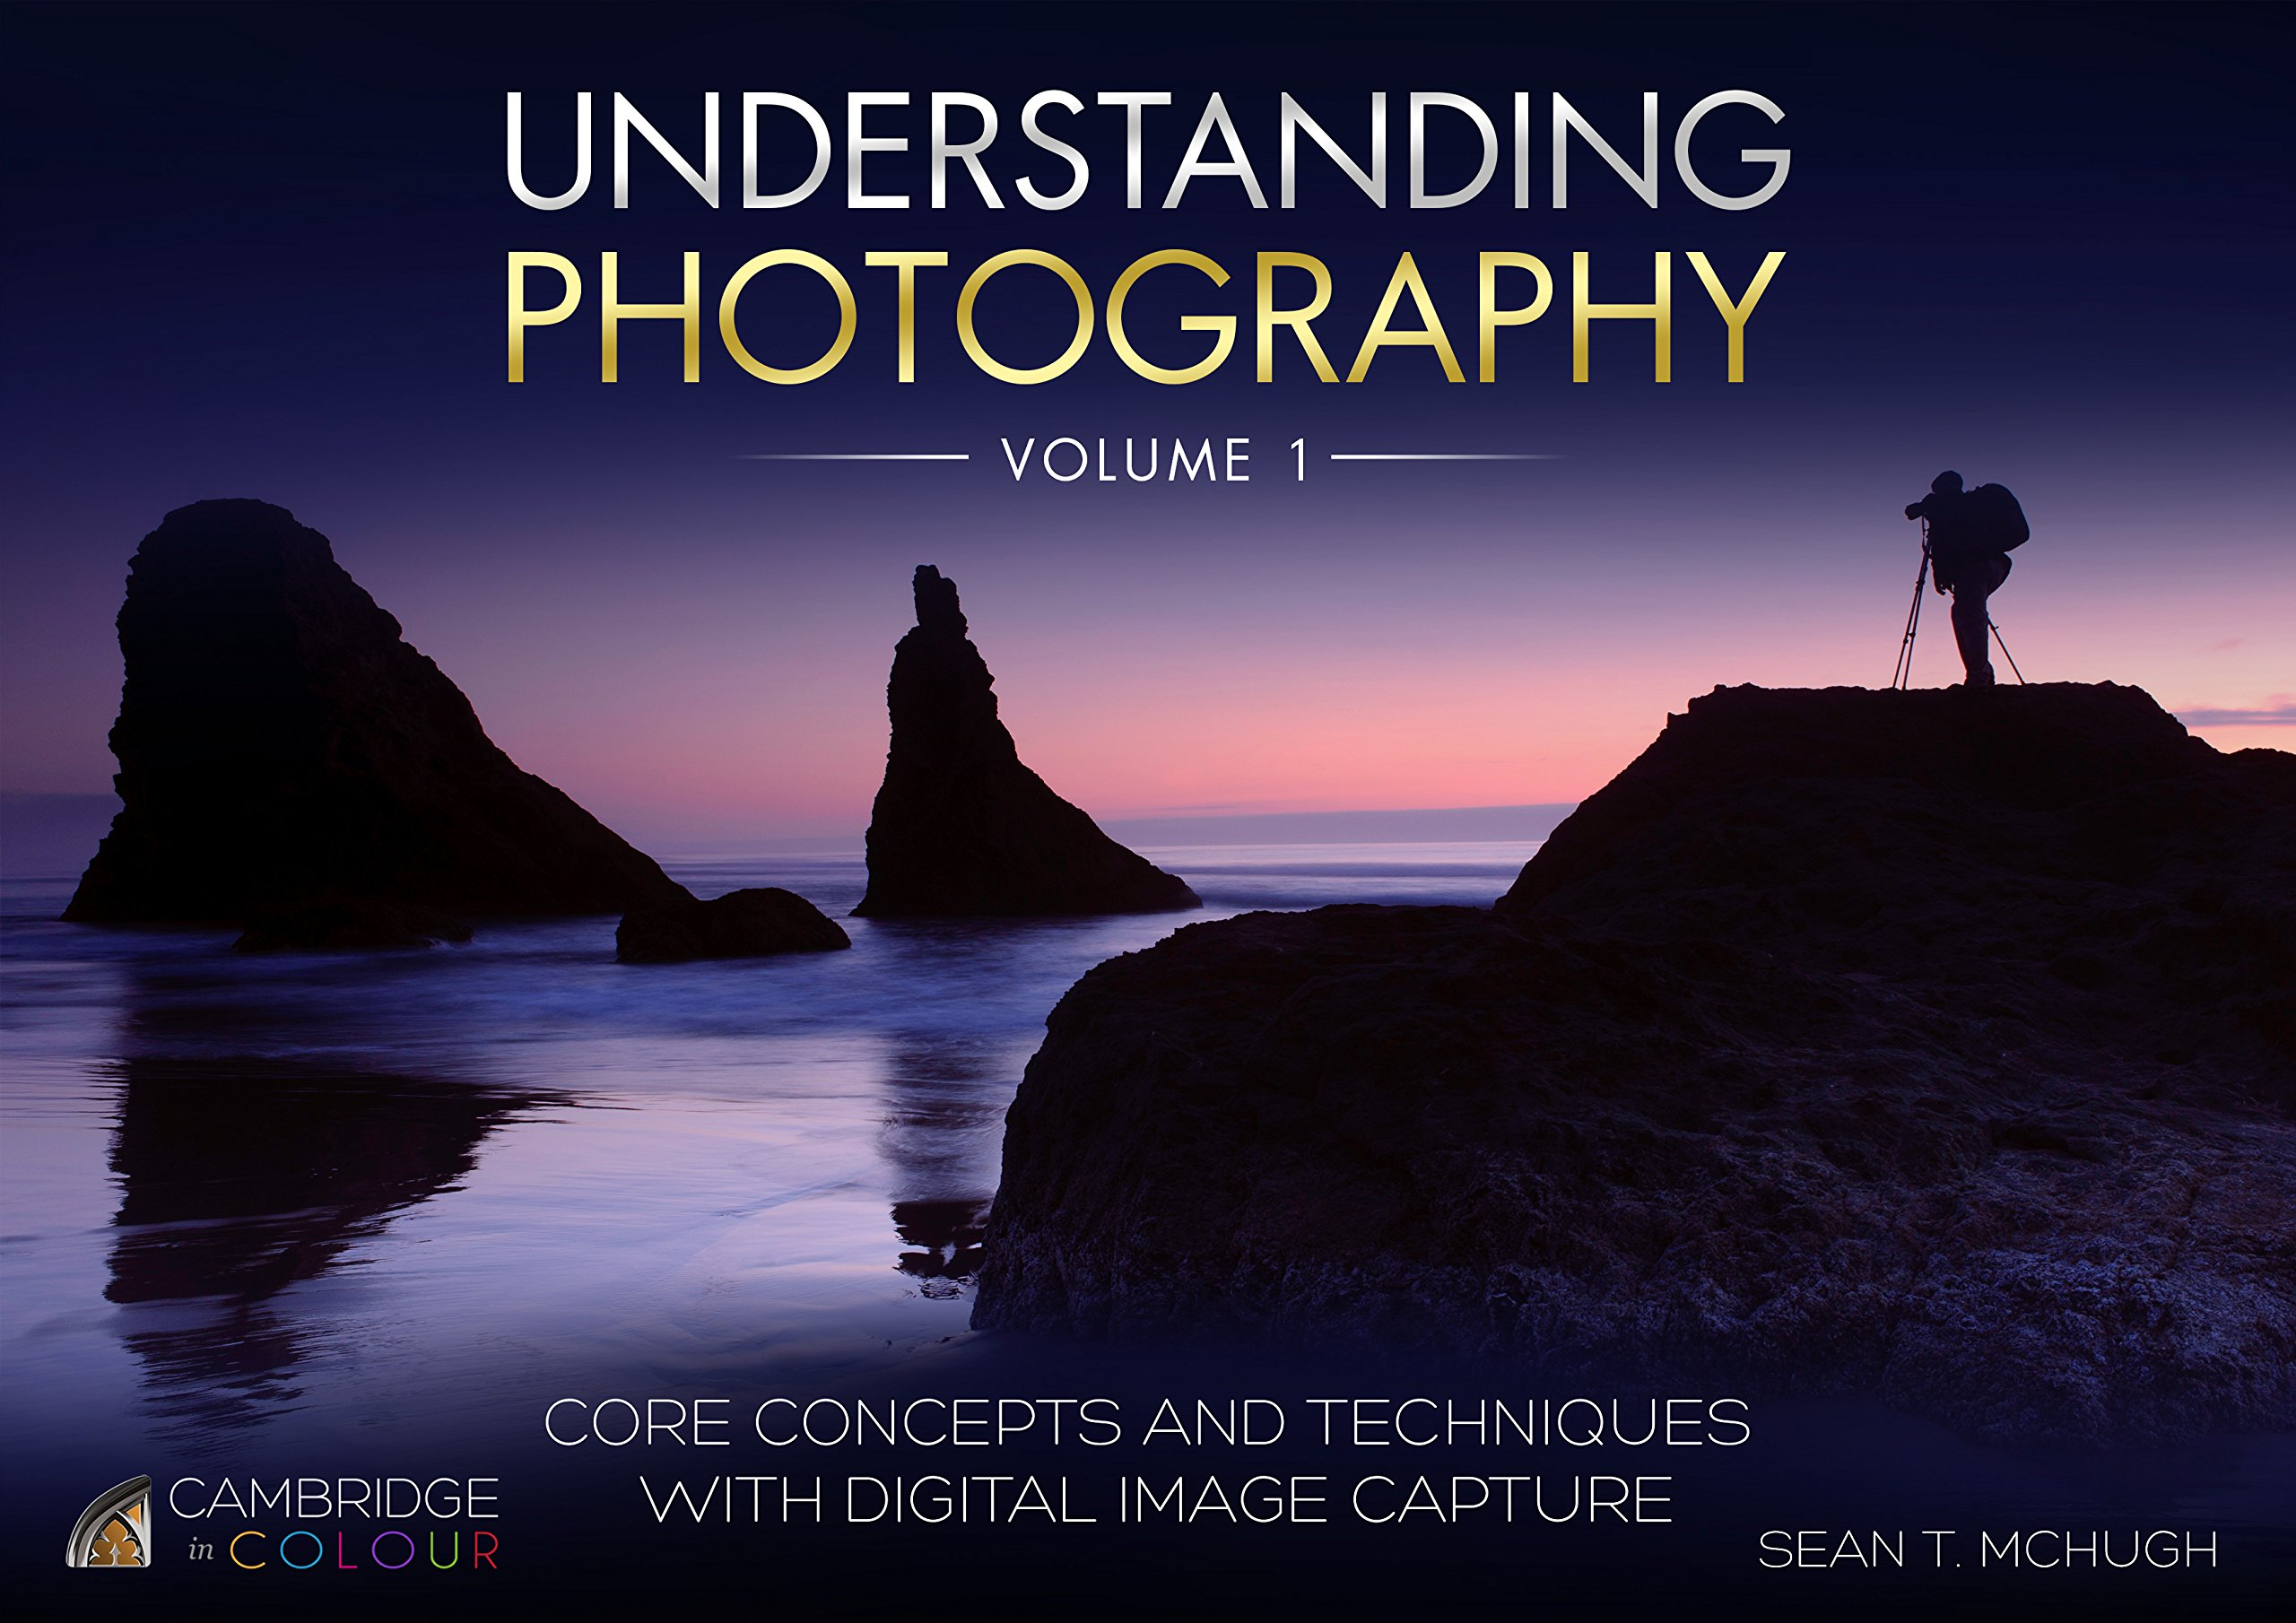 Understanding photography core concepts and techniques with understanding photography core concepts and techniques with digital image capture sean t mchugh 9780998301921 amazon books baditri Gallery